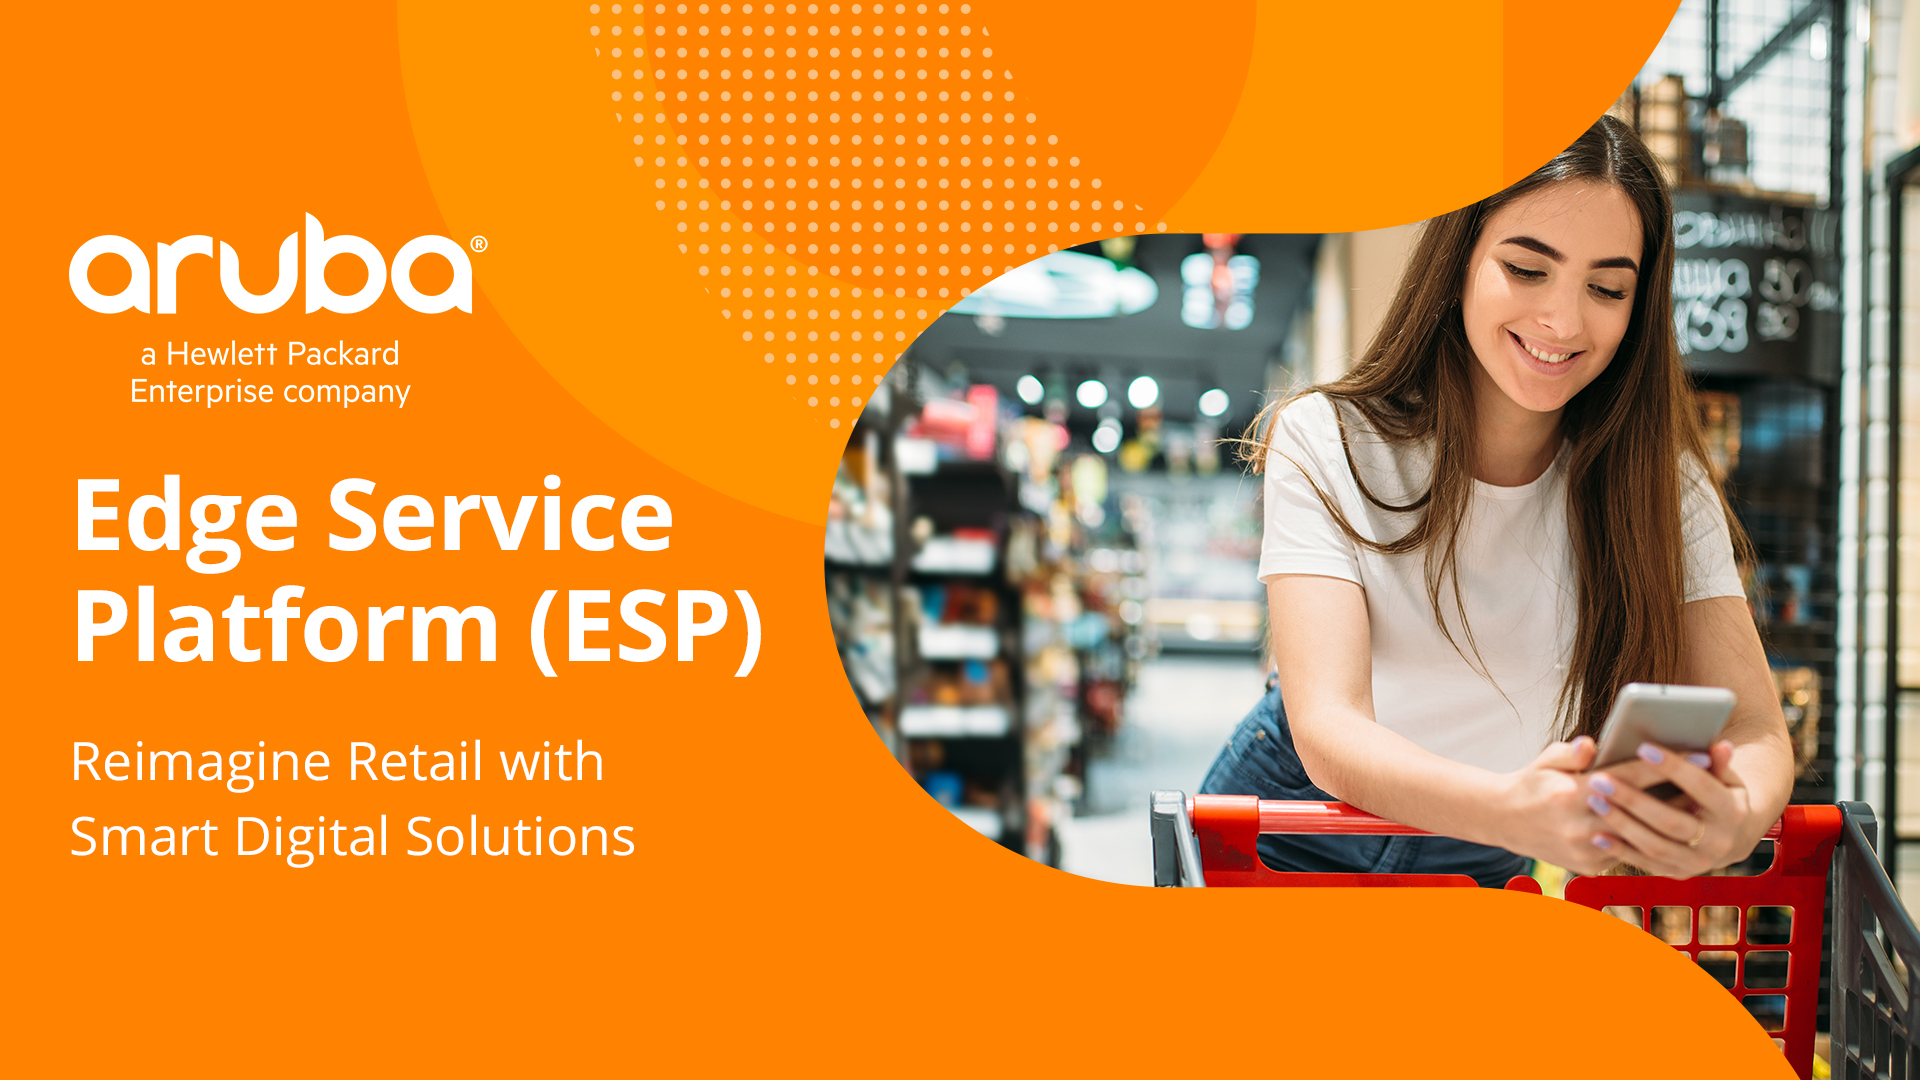 Aruba Edge Service Platform in Retail